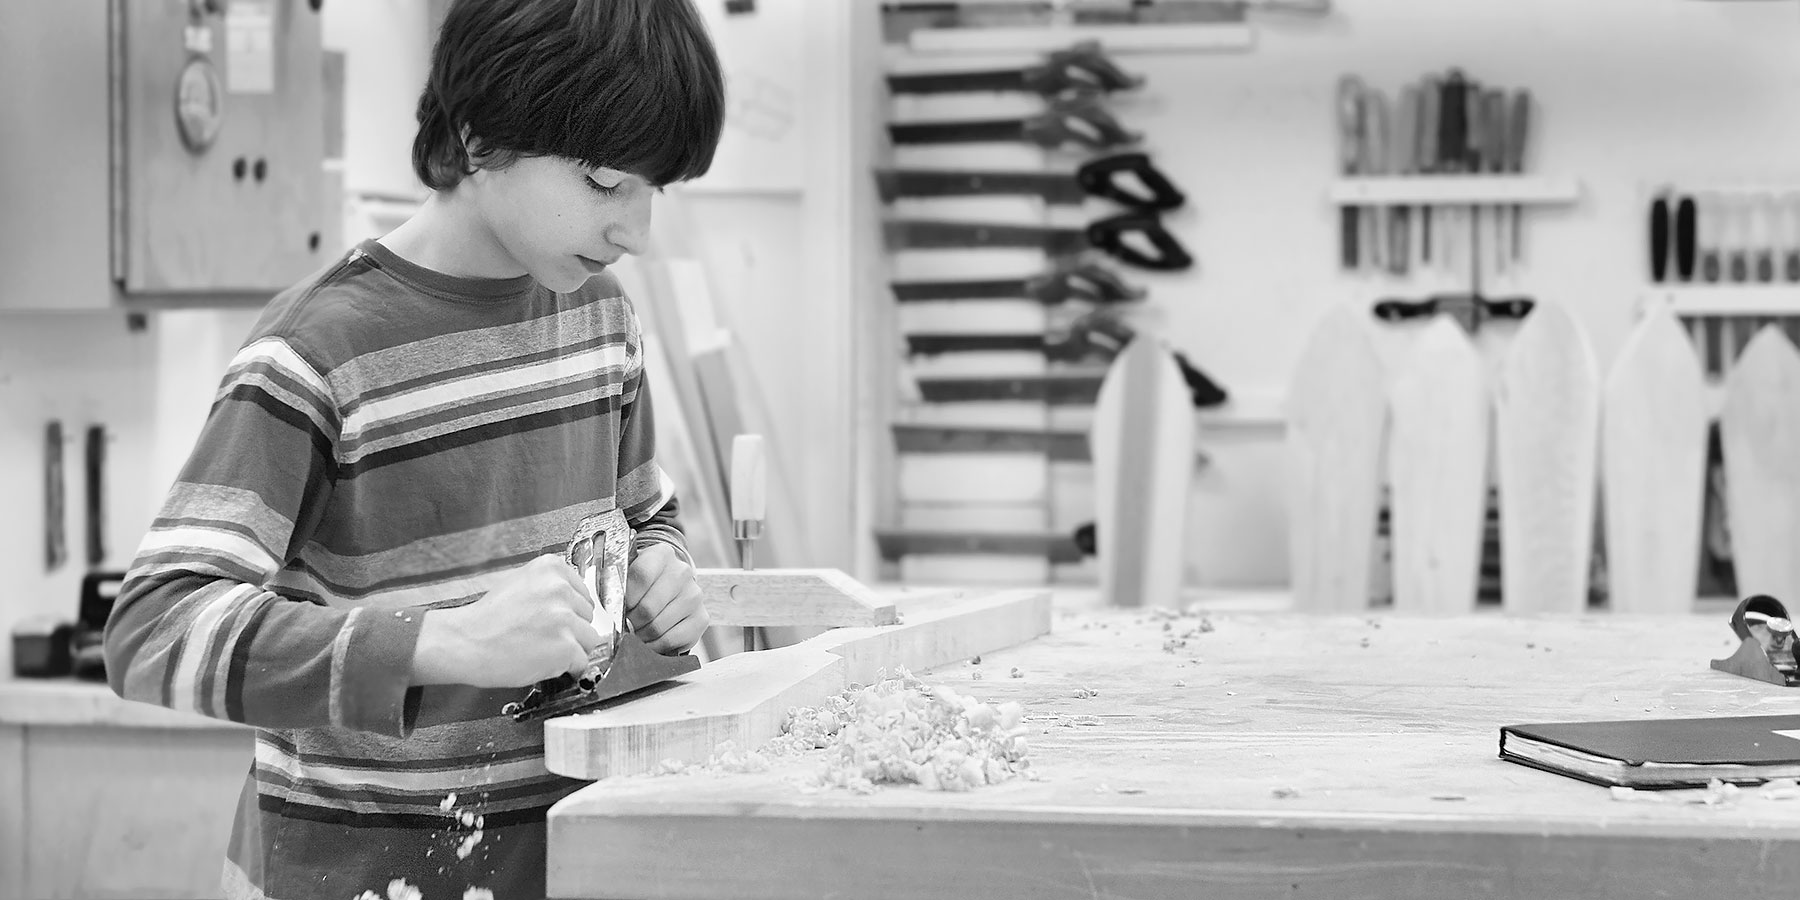 Shaping a Paddle in the Saltspring Island Middle School Workshop ©johncameron.ca